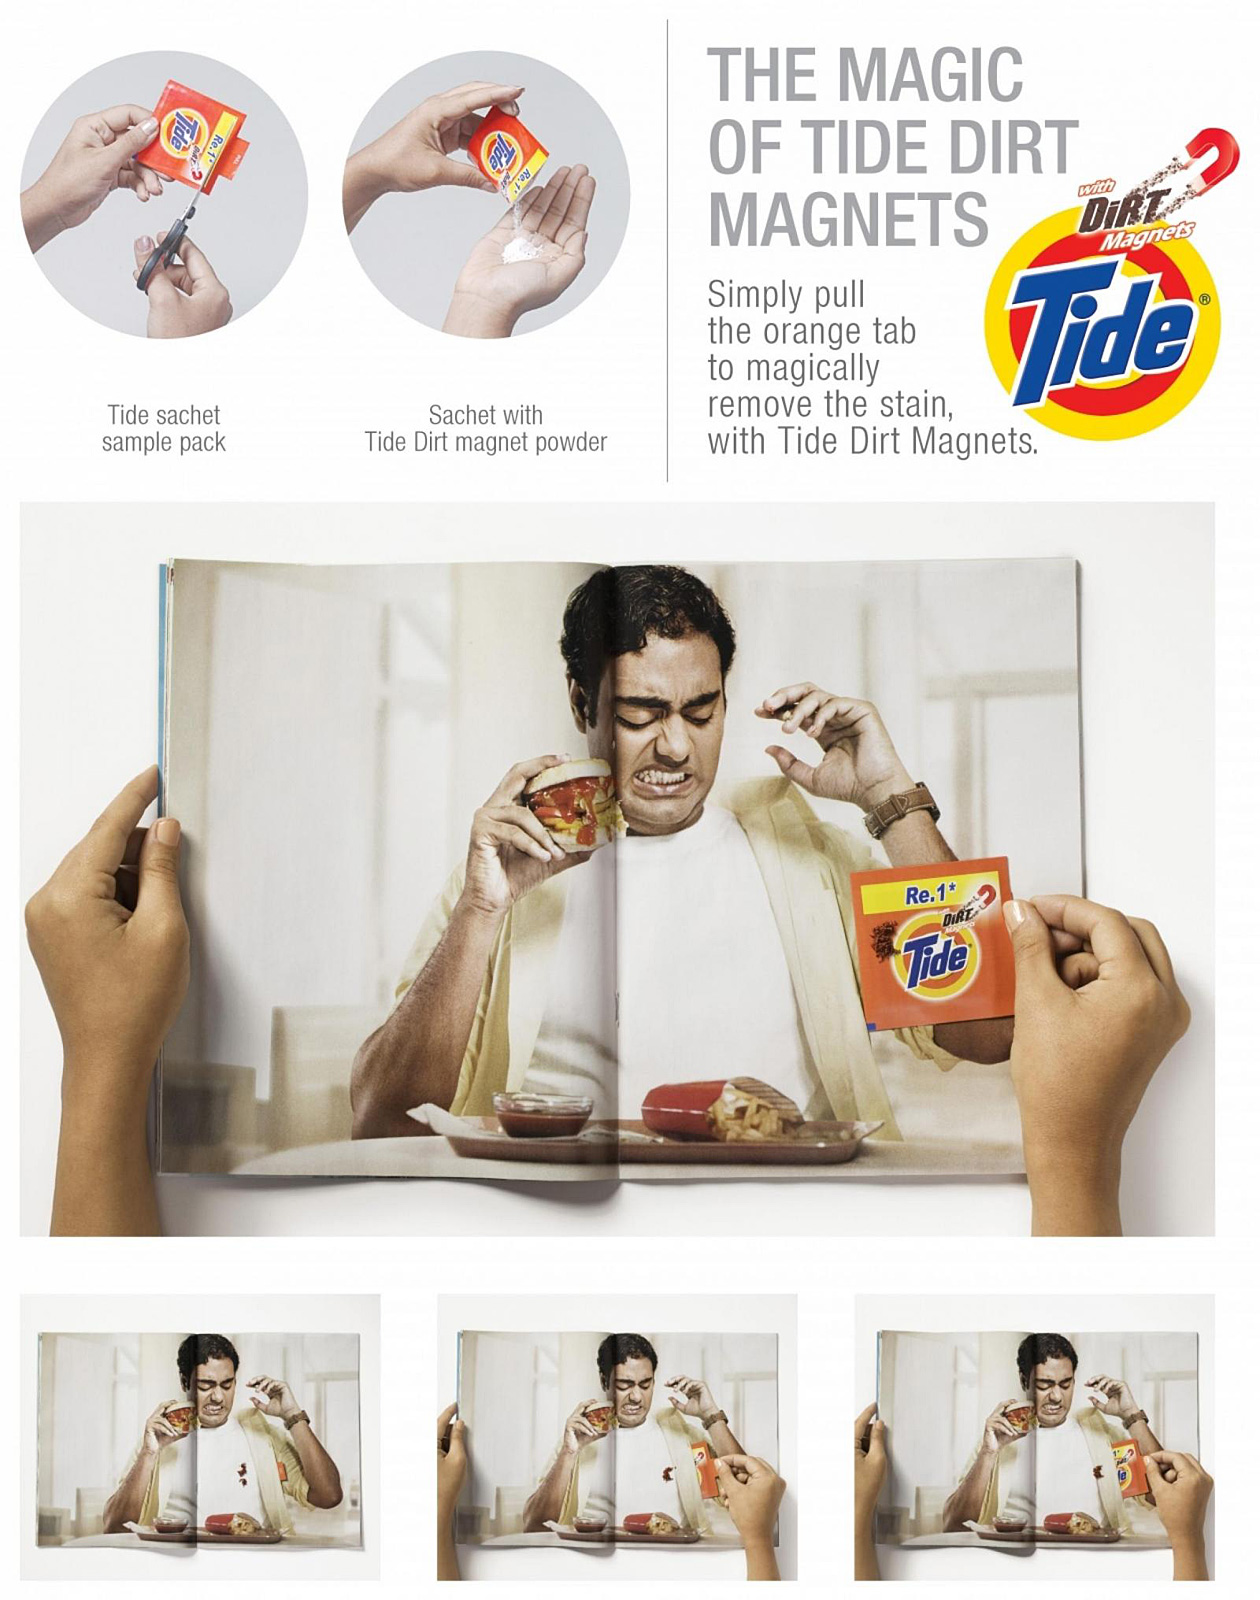 marketing and tide Tide market analysis 18,670 views share  after targeting the young singles there has to be a movement upwards for tide all marketing plans start young.